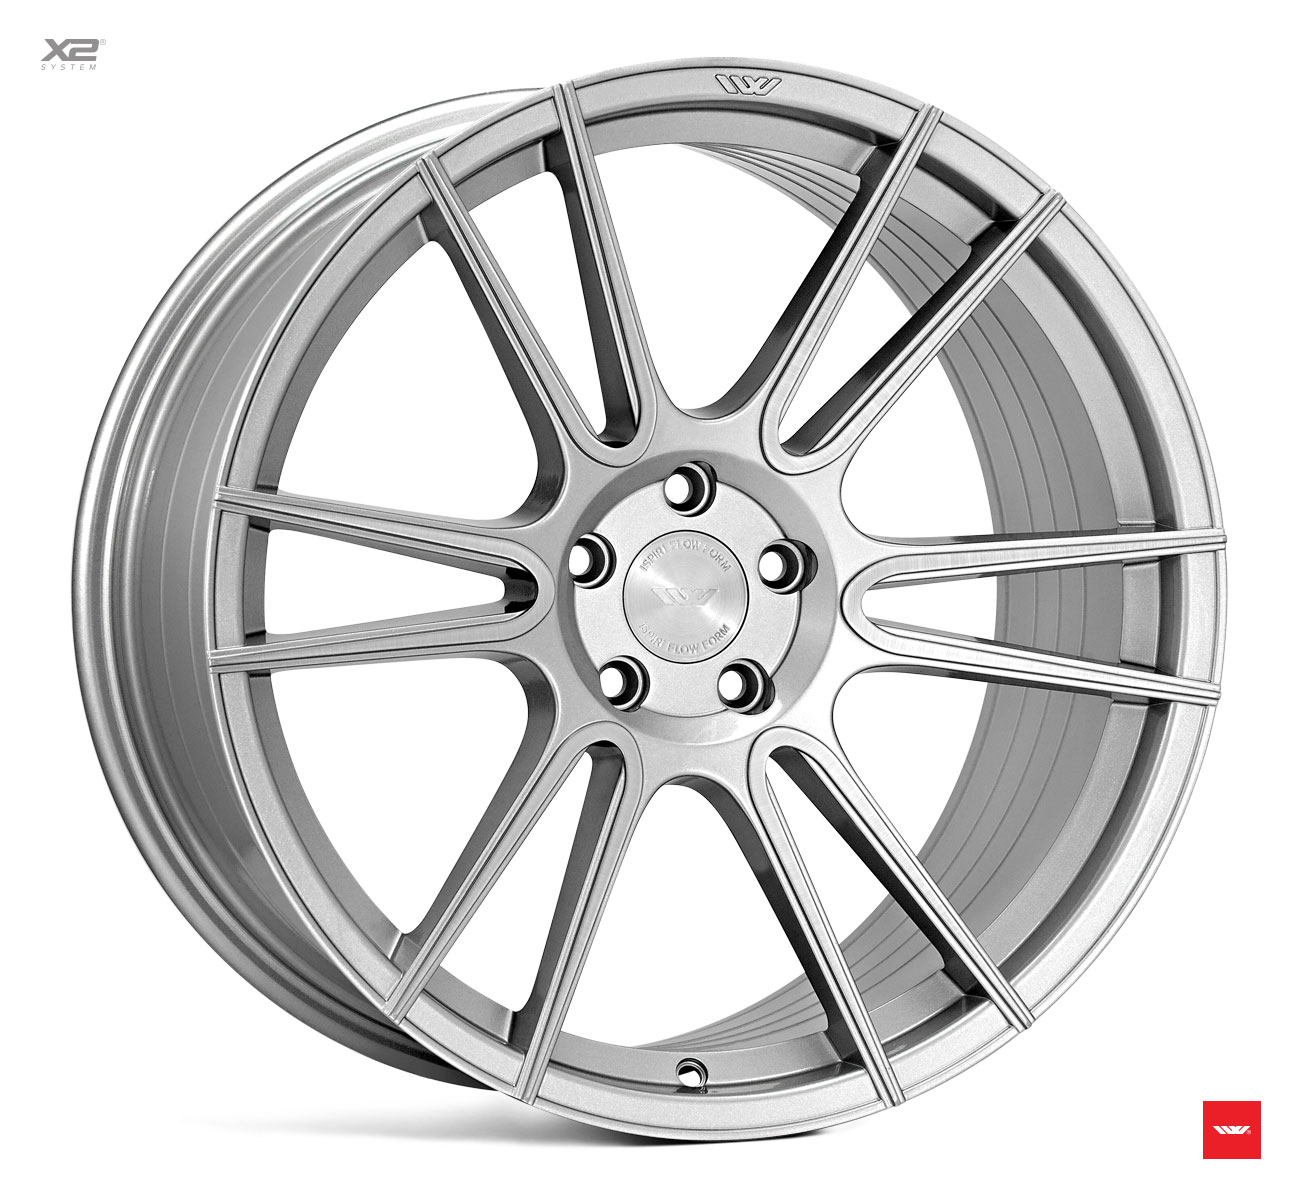 "NEW 20"" ISPIRI FFR7 TWIN CURVED 6 SPOKE ALLOY WHEELS IN PURE SILVER BRUSHED, WIDER 10"" REAR 5x120"